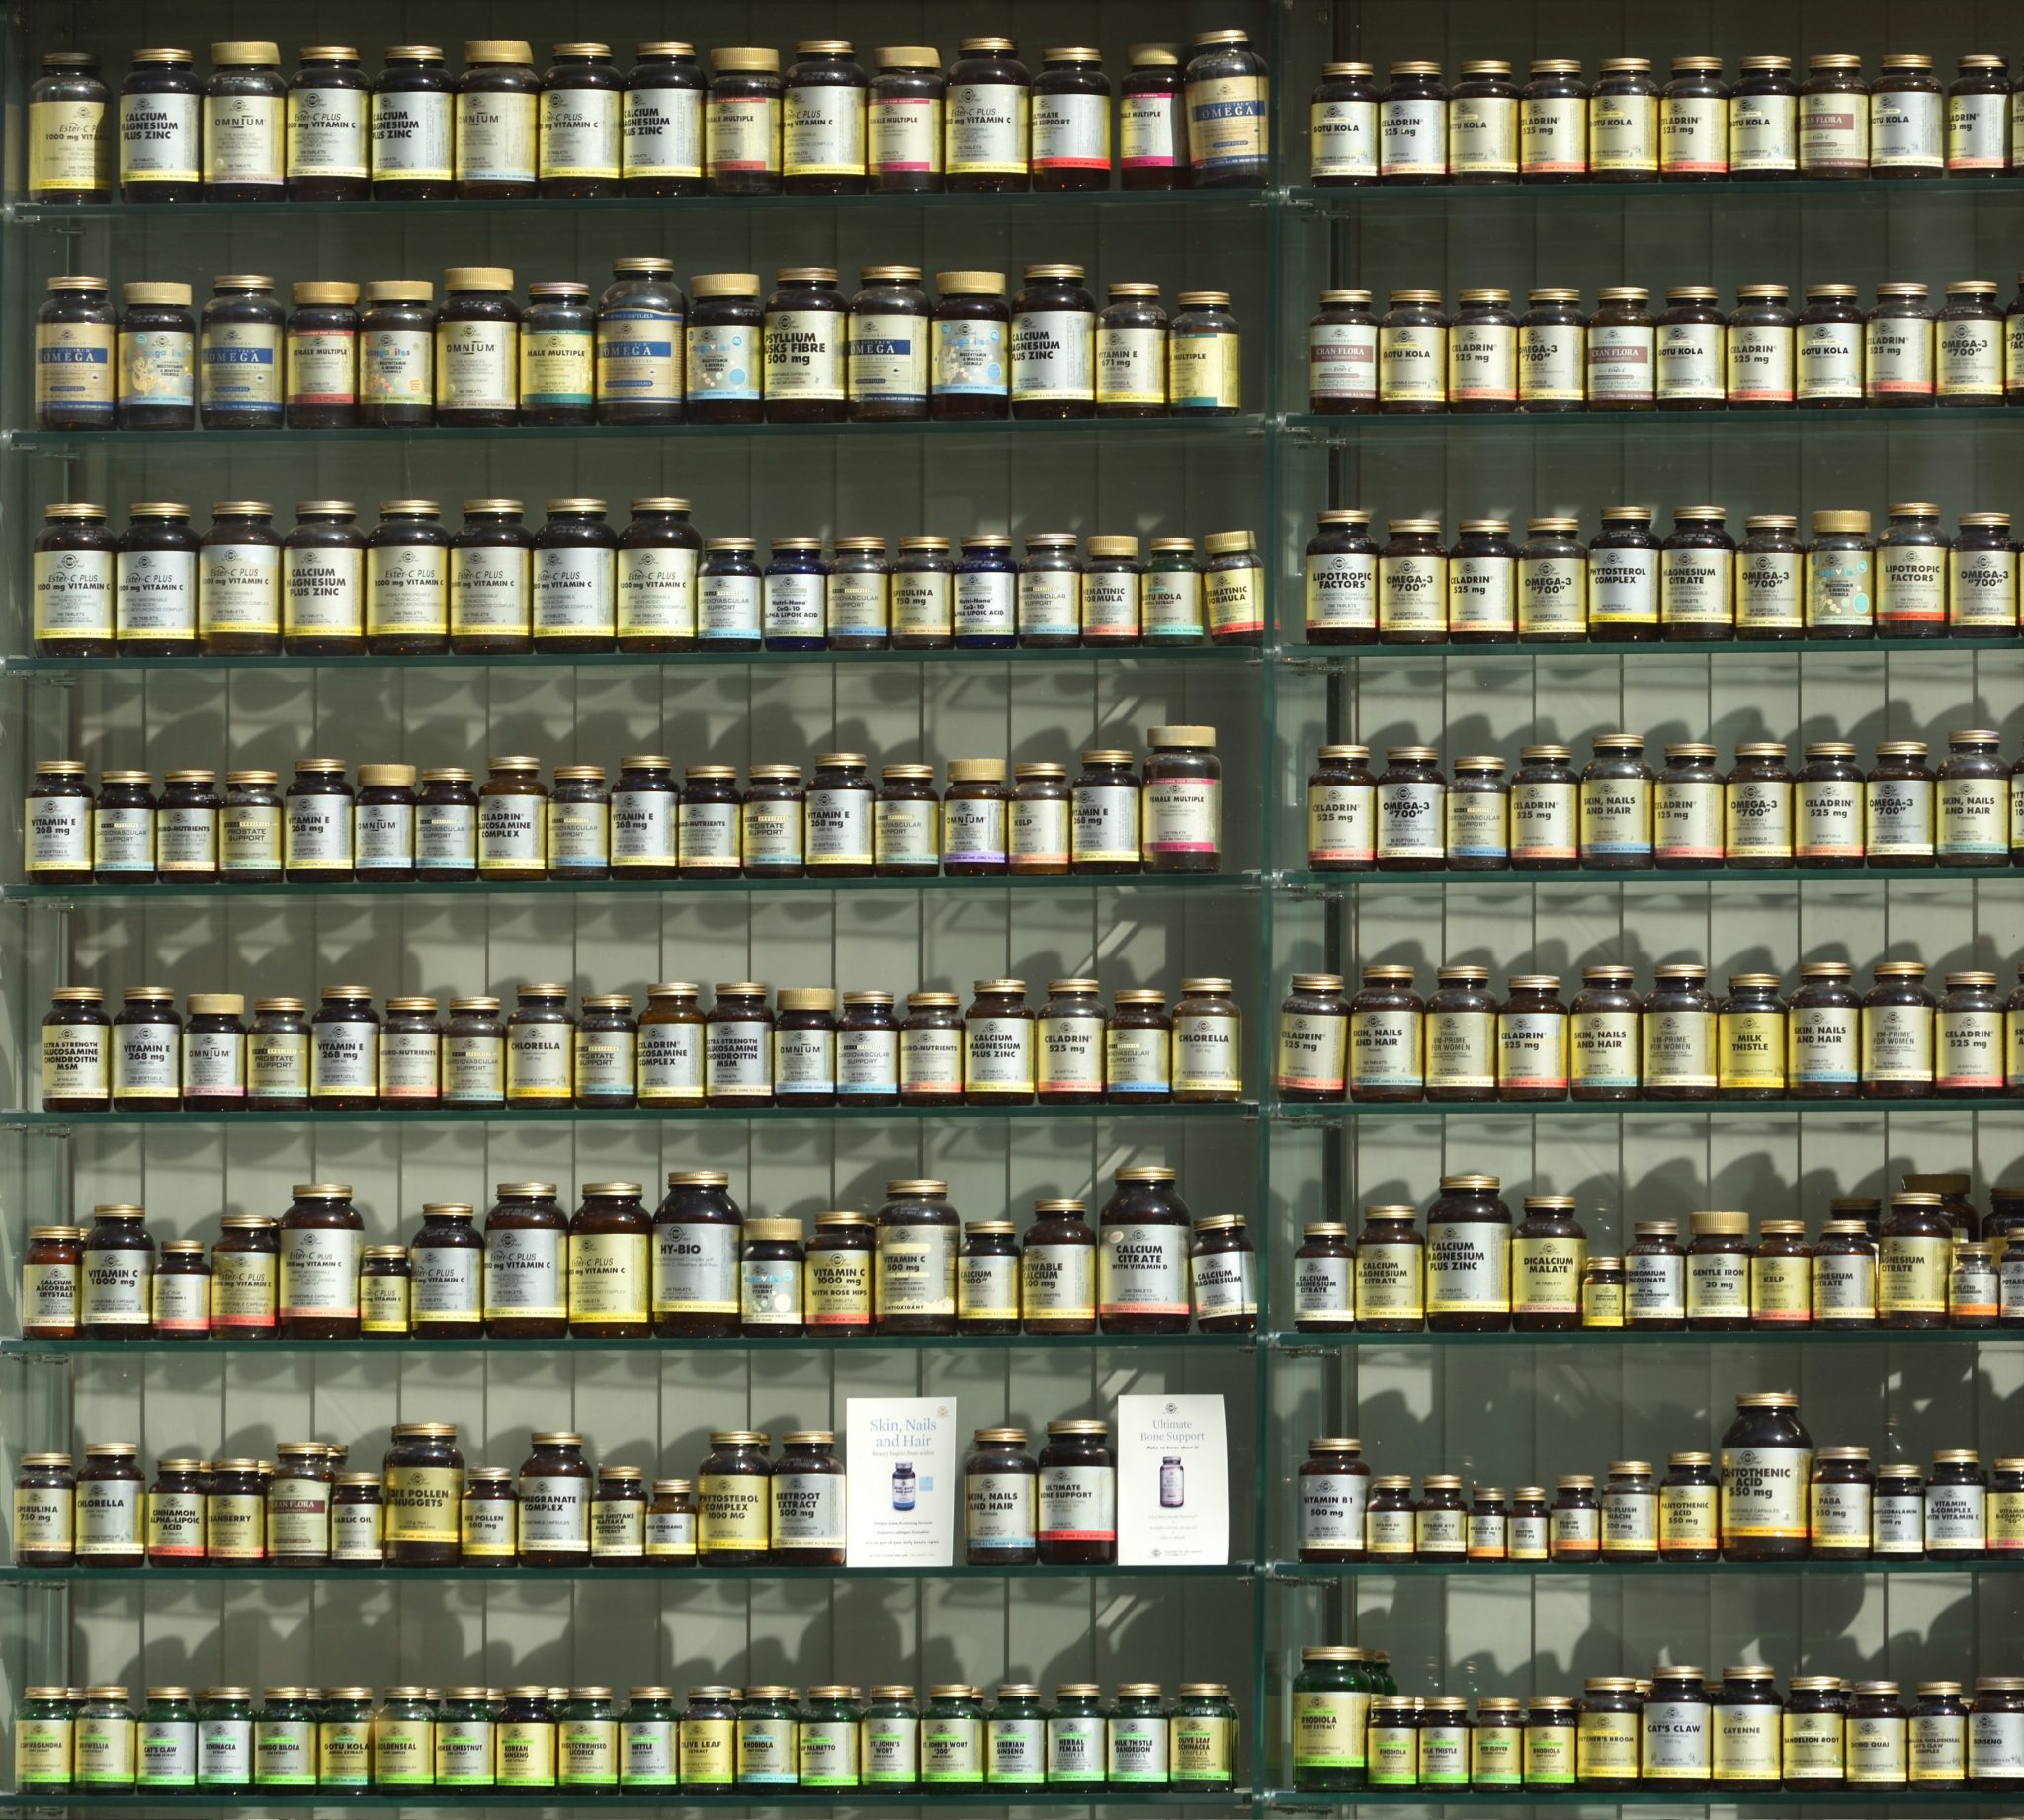 A wall full of various dietary supplements